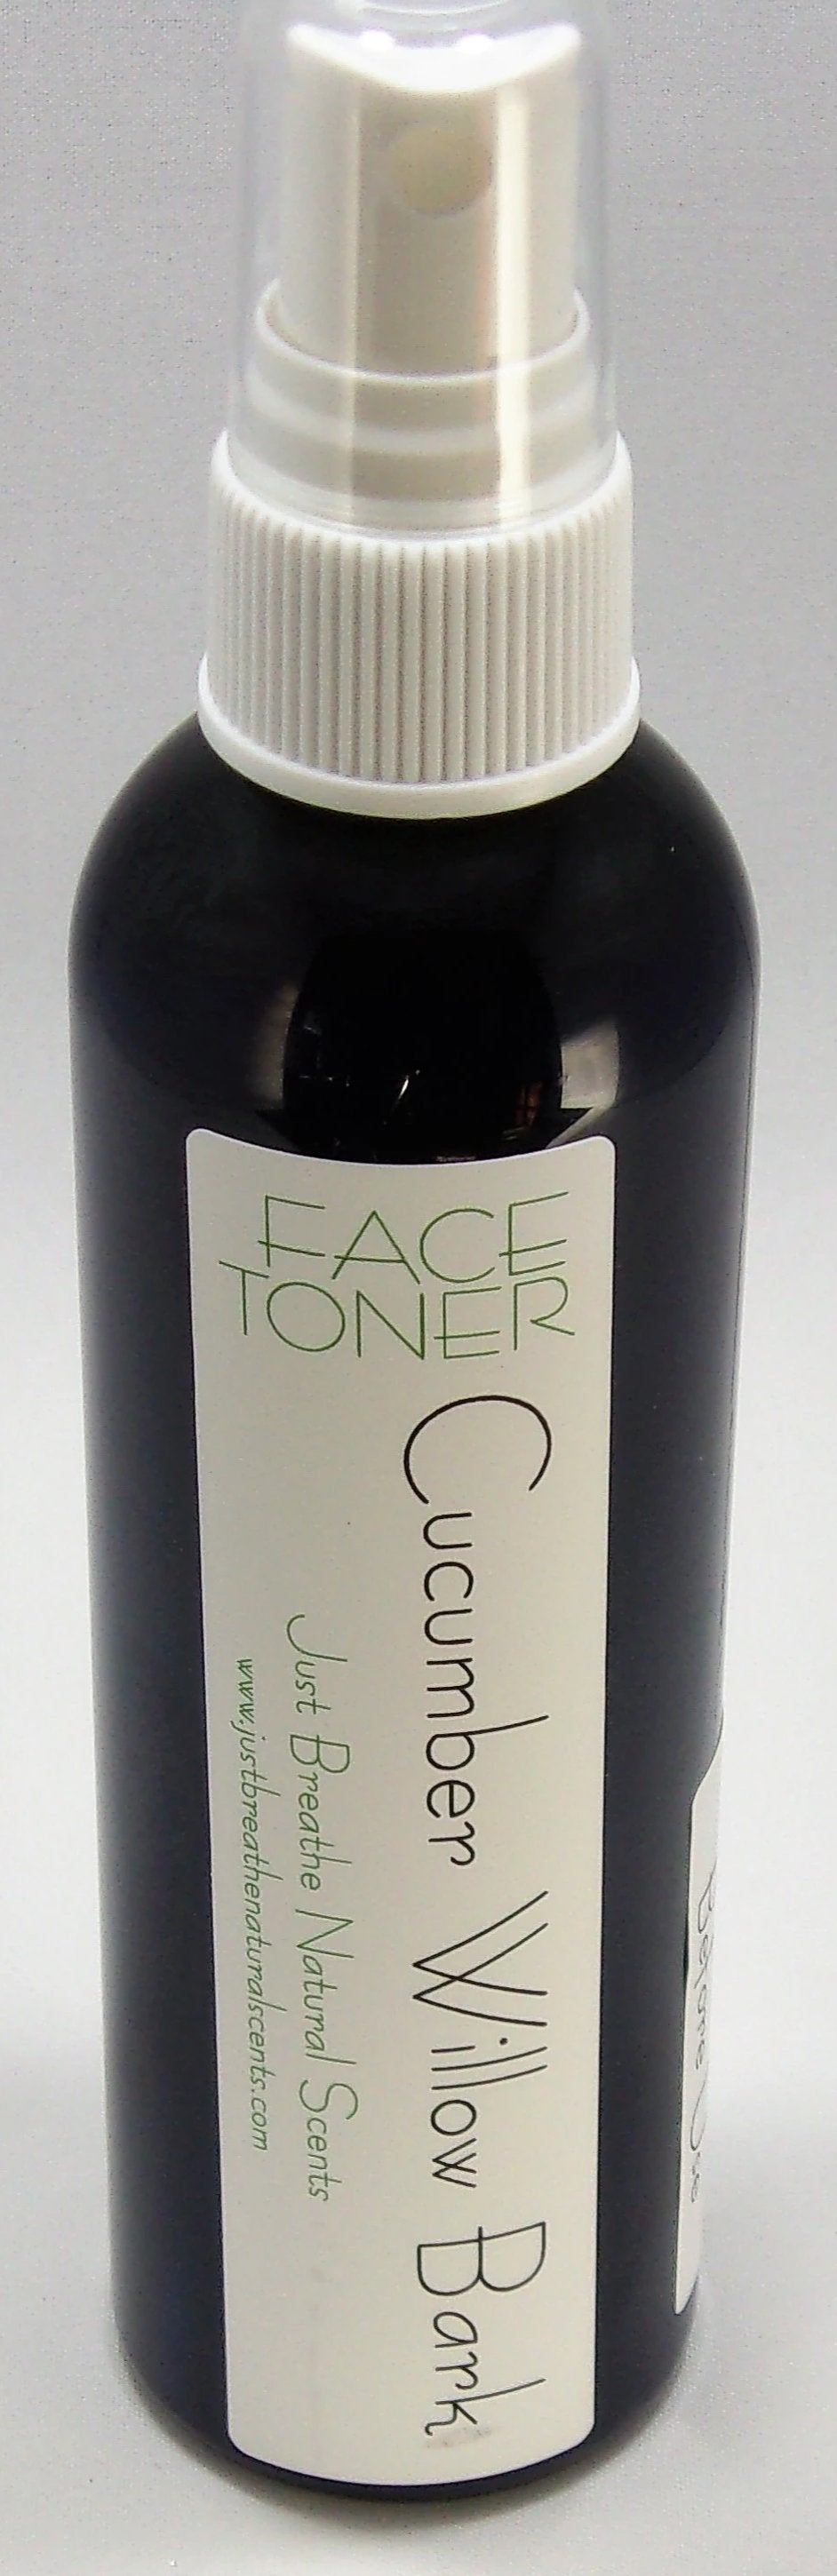 Cucumber Willow Bark Skin Toner